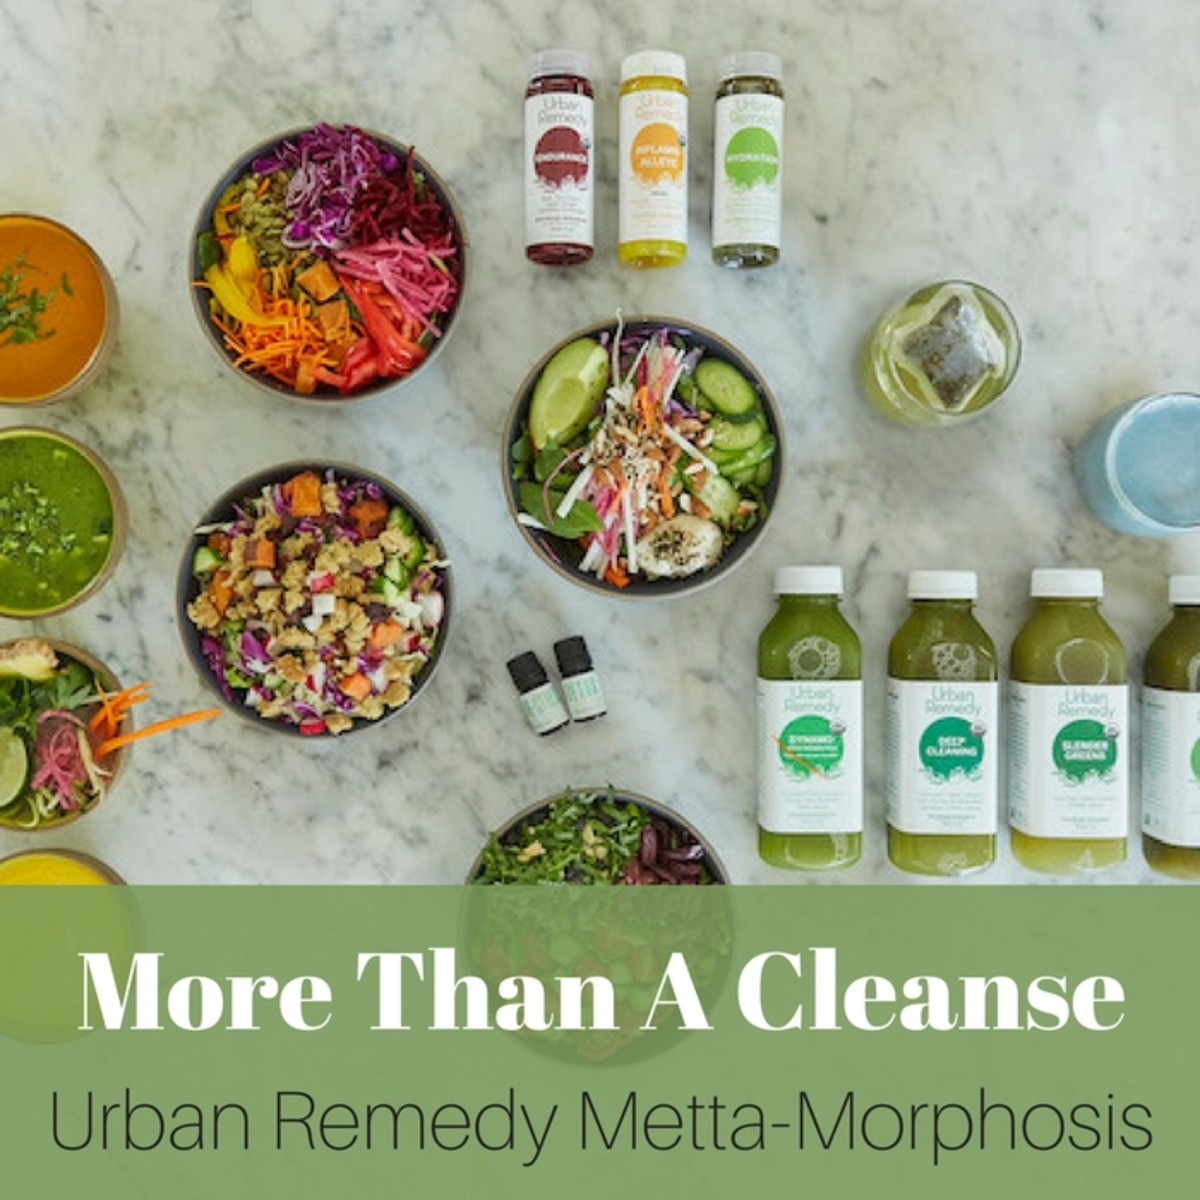 Urban Remedy Metta-Morphosis Cleanse